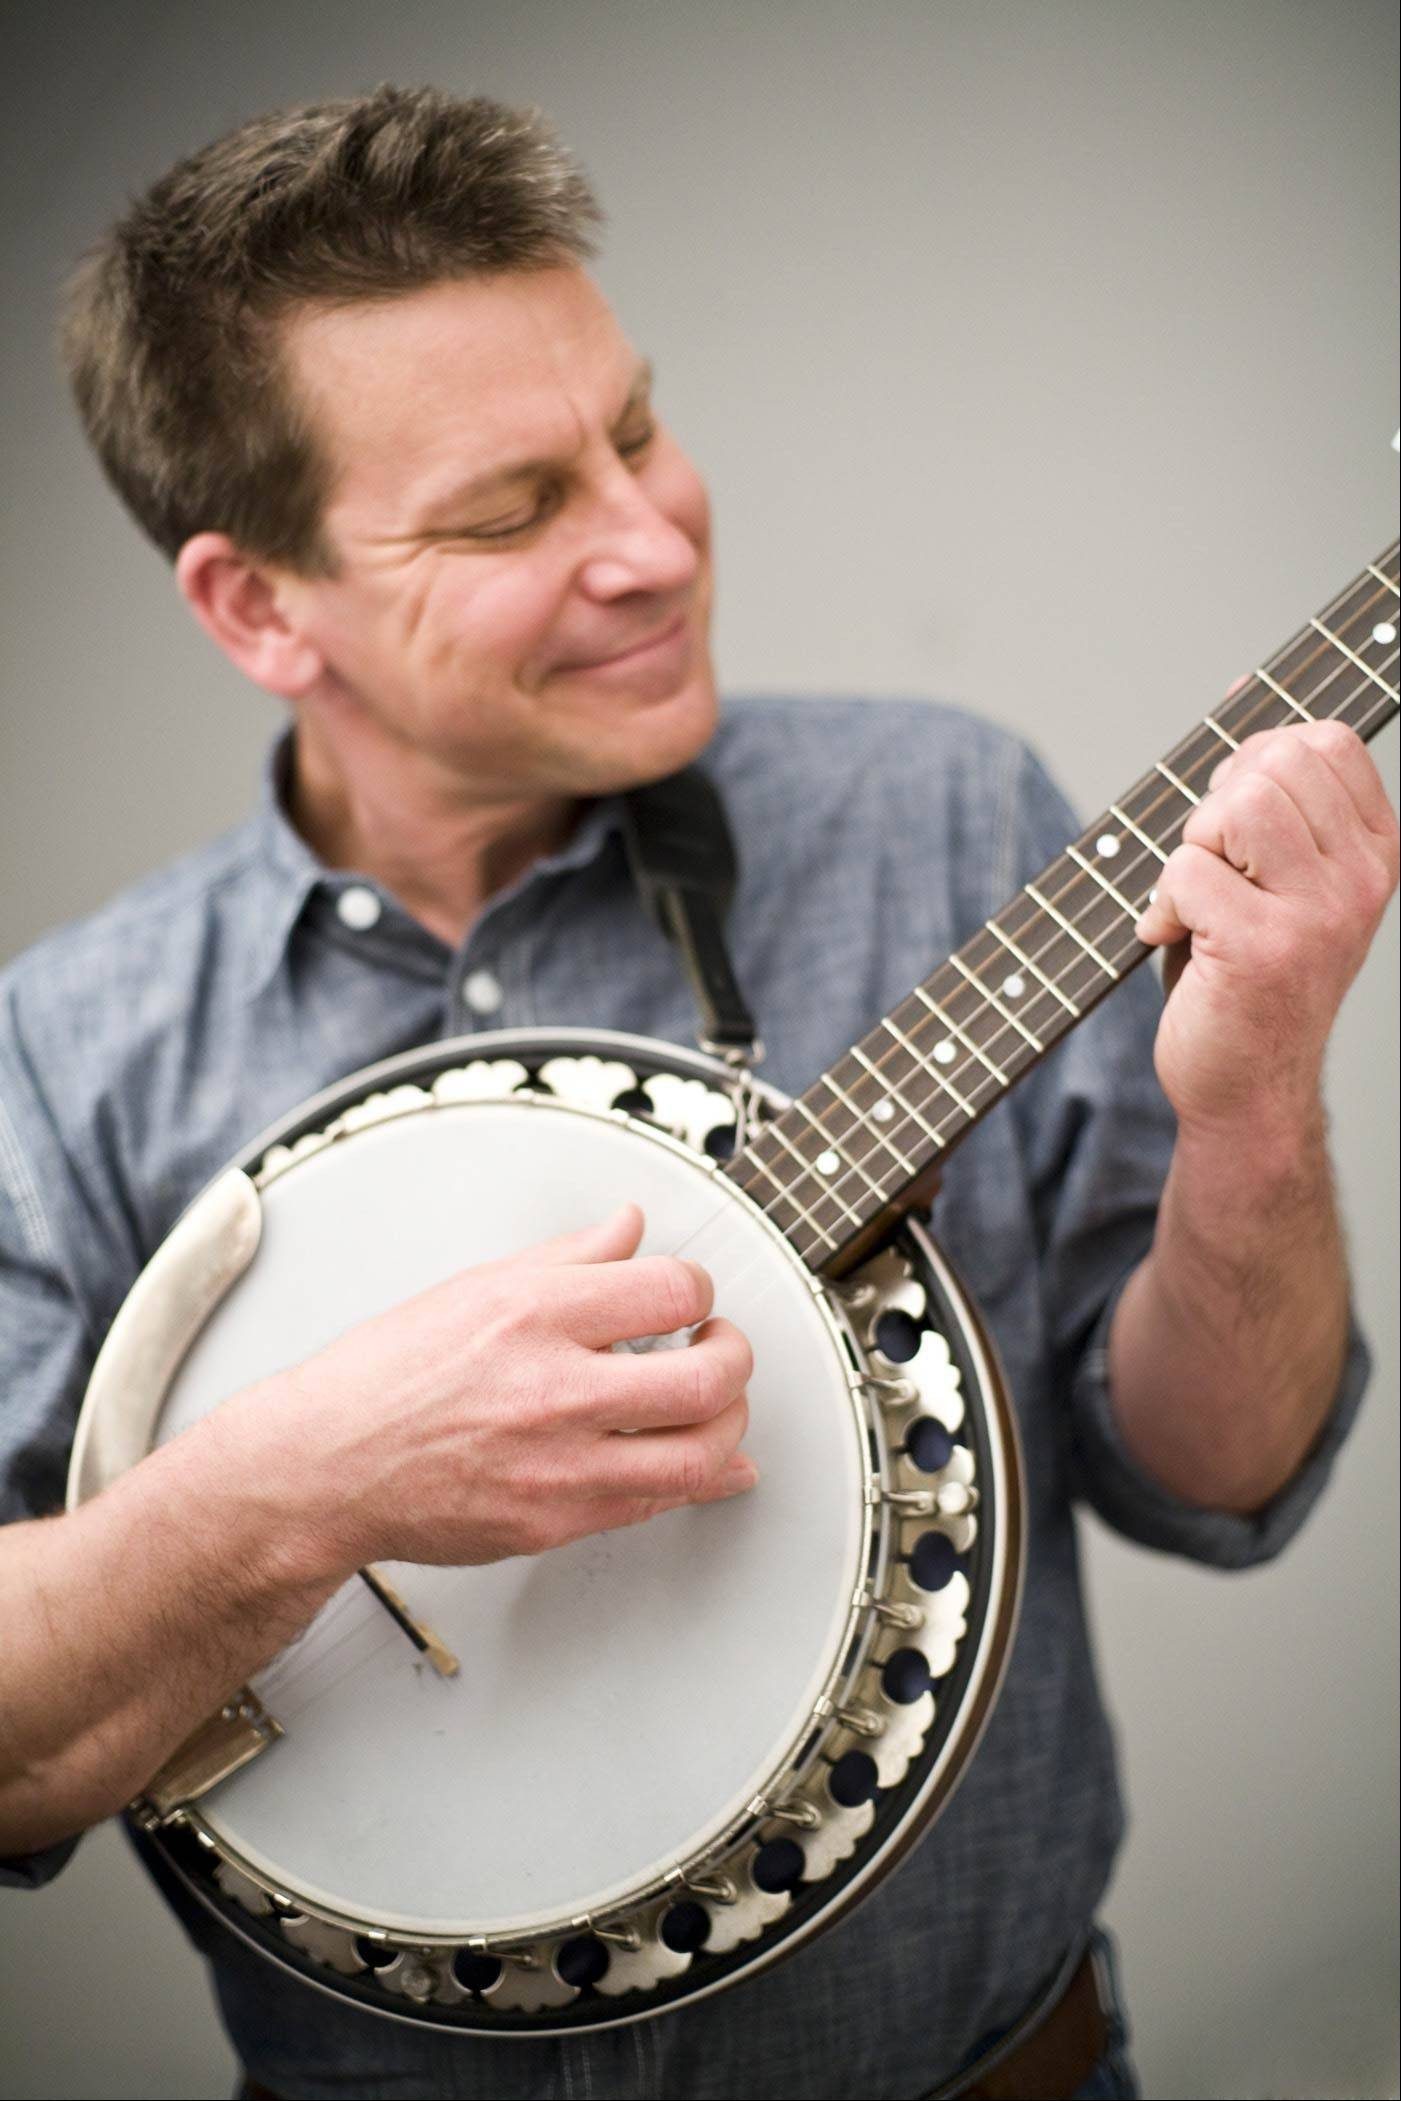 Award-winning musician Jim Gill will perform at the grand opening celebration of the Creek Bend Nature Center.